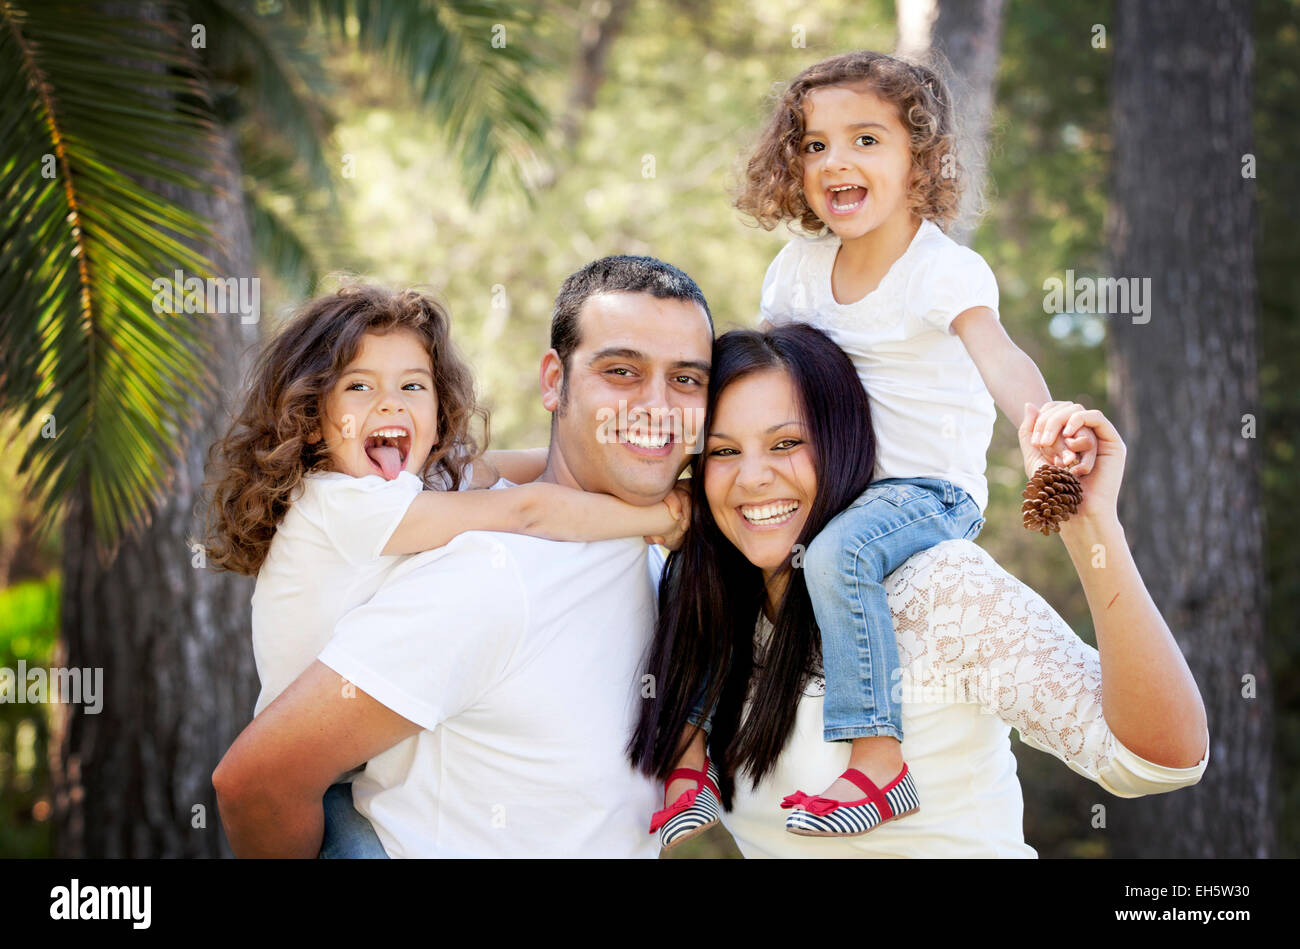 parents and children, happy smiling Hispanic family - Stock Image